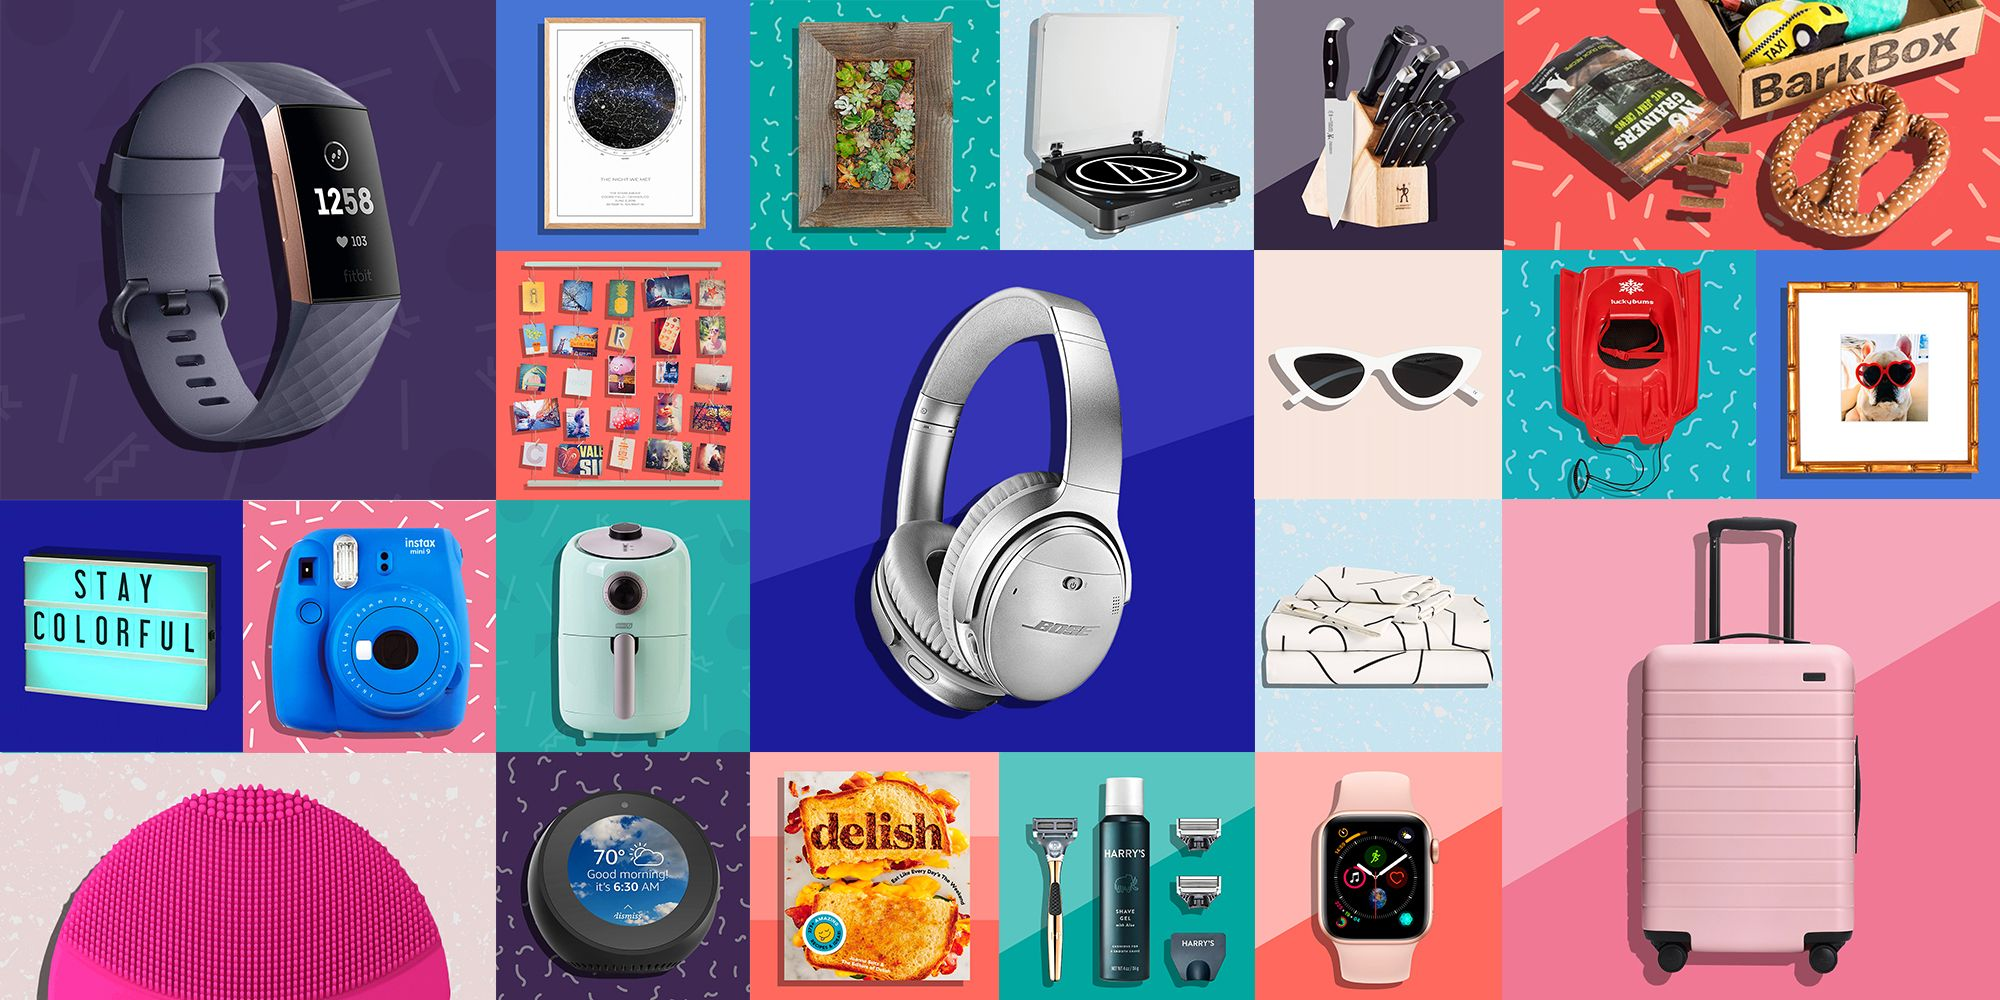 best Christmas gifts 2018 & 100+ Best Christmas Gifts of 2018 - Holiday Gift Ideas for Everyone ...